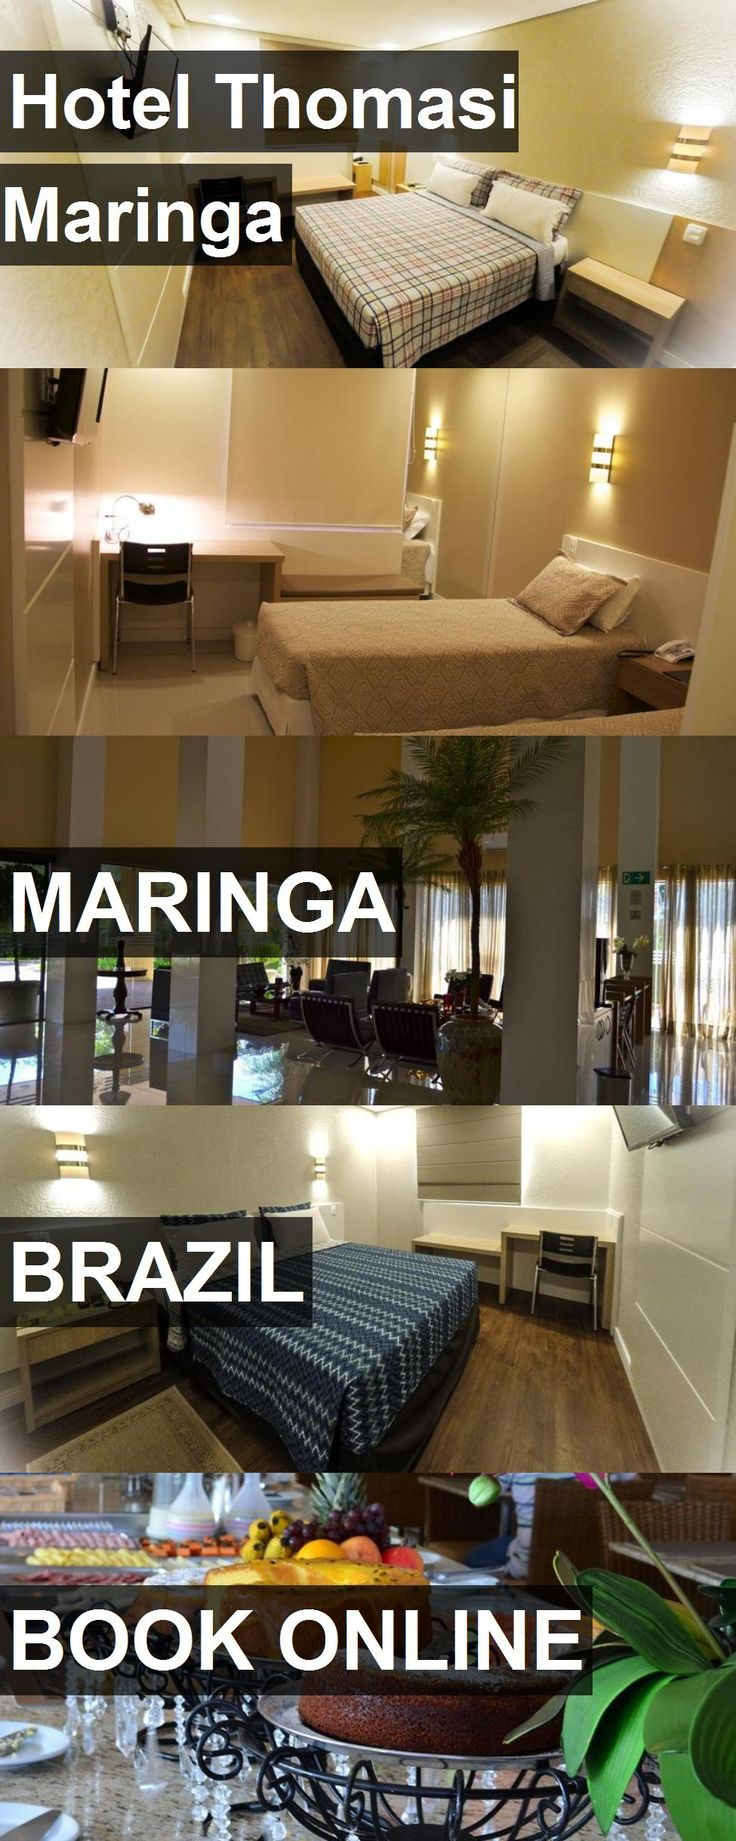 Hotel Thomasi Maringa in Maringa, Brazil. For more information, photos, reviews and best prices please follow the link. #Brazil #Maringa #travel #vacation #hotel